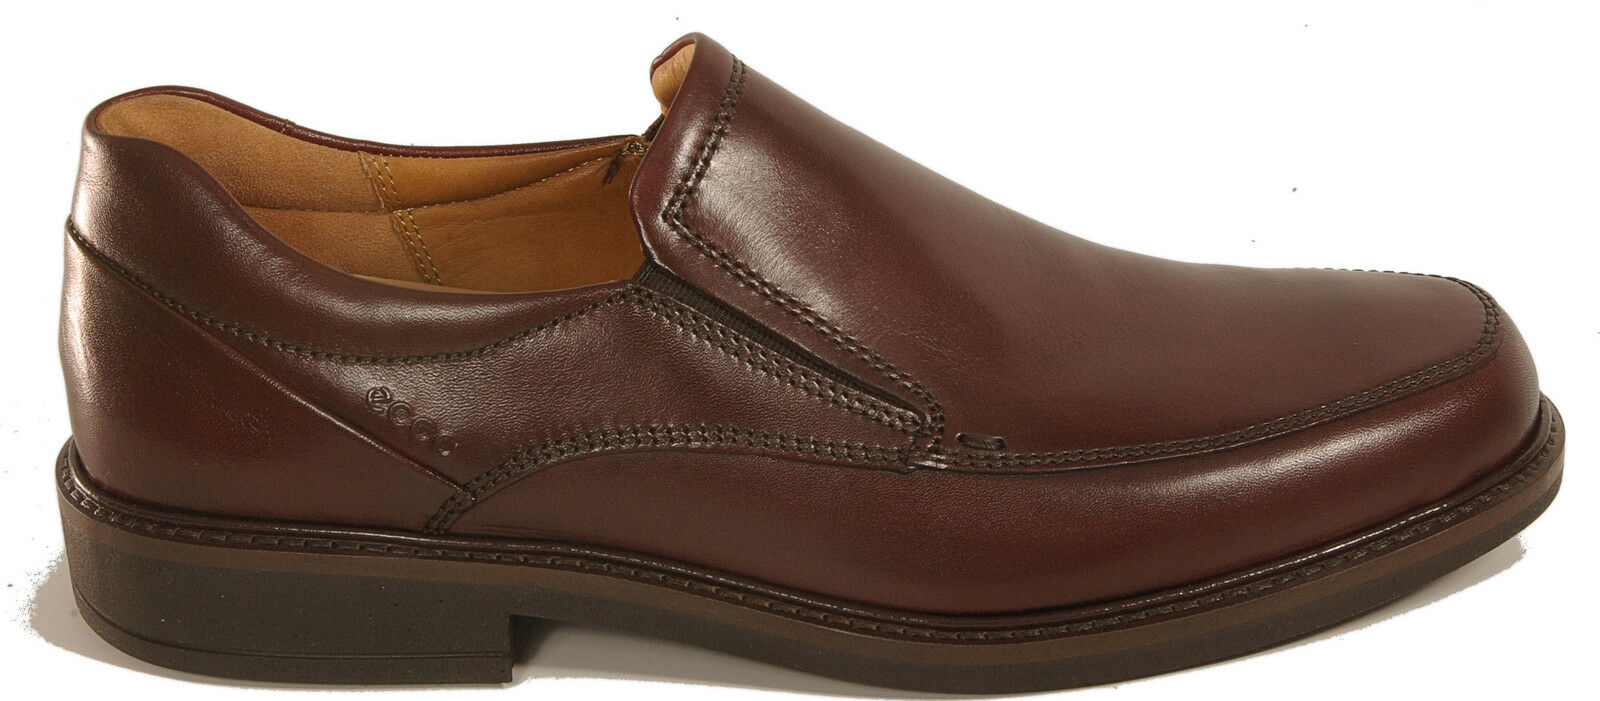 ECCO shoes model HOLTON slip ons brown leather NEW